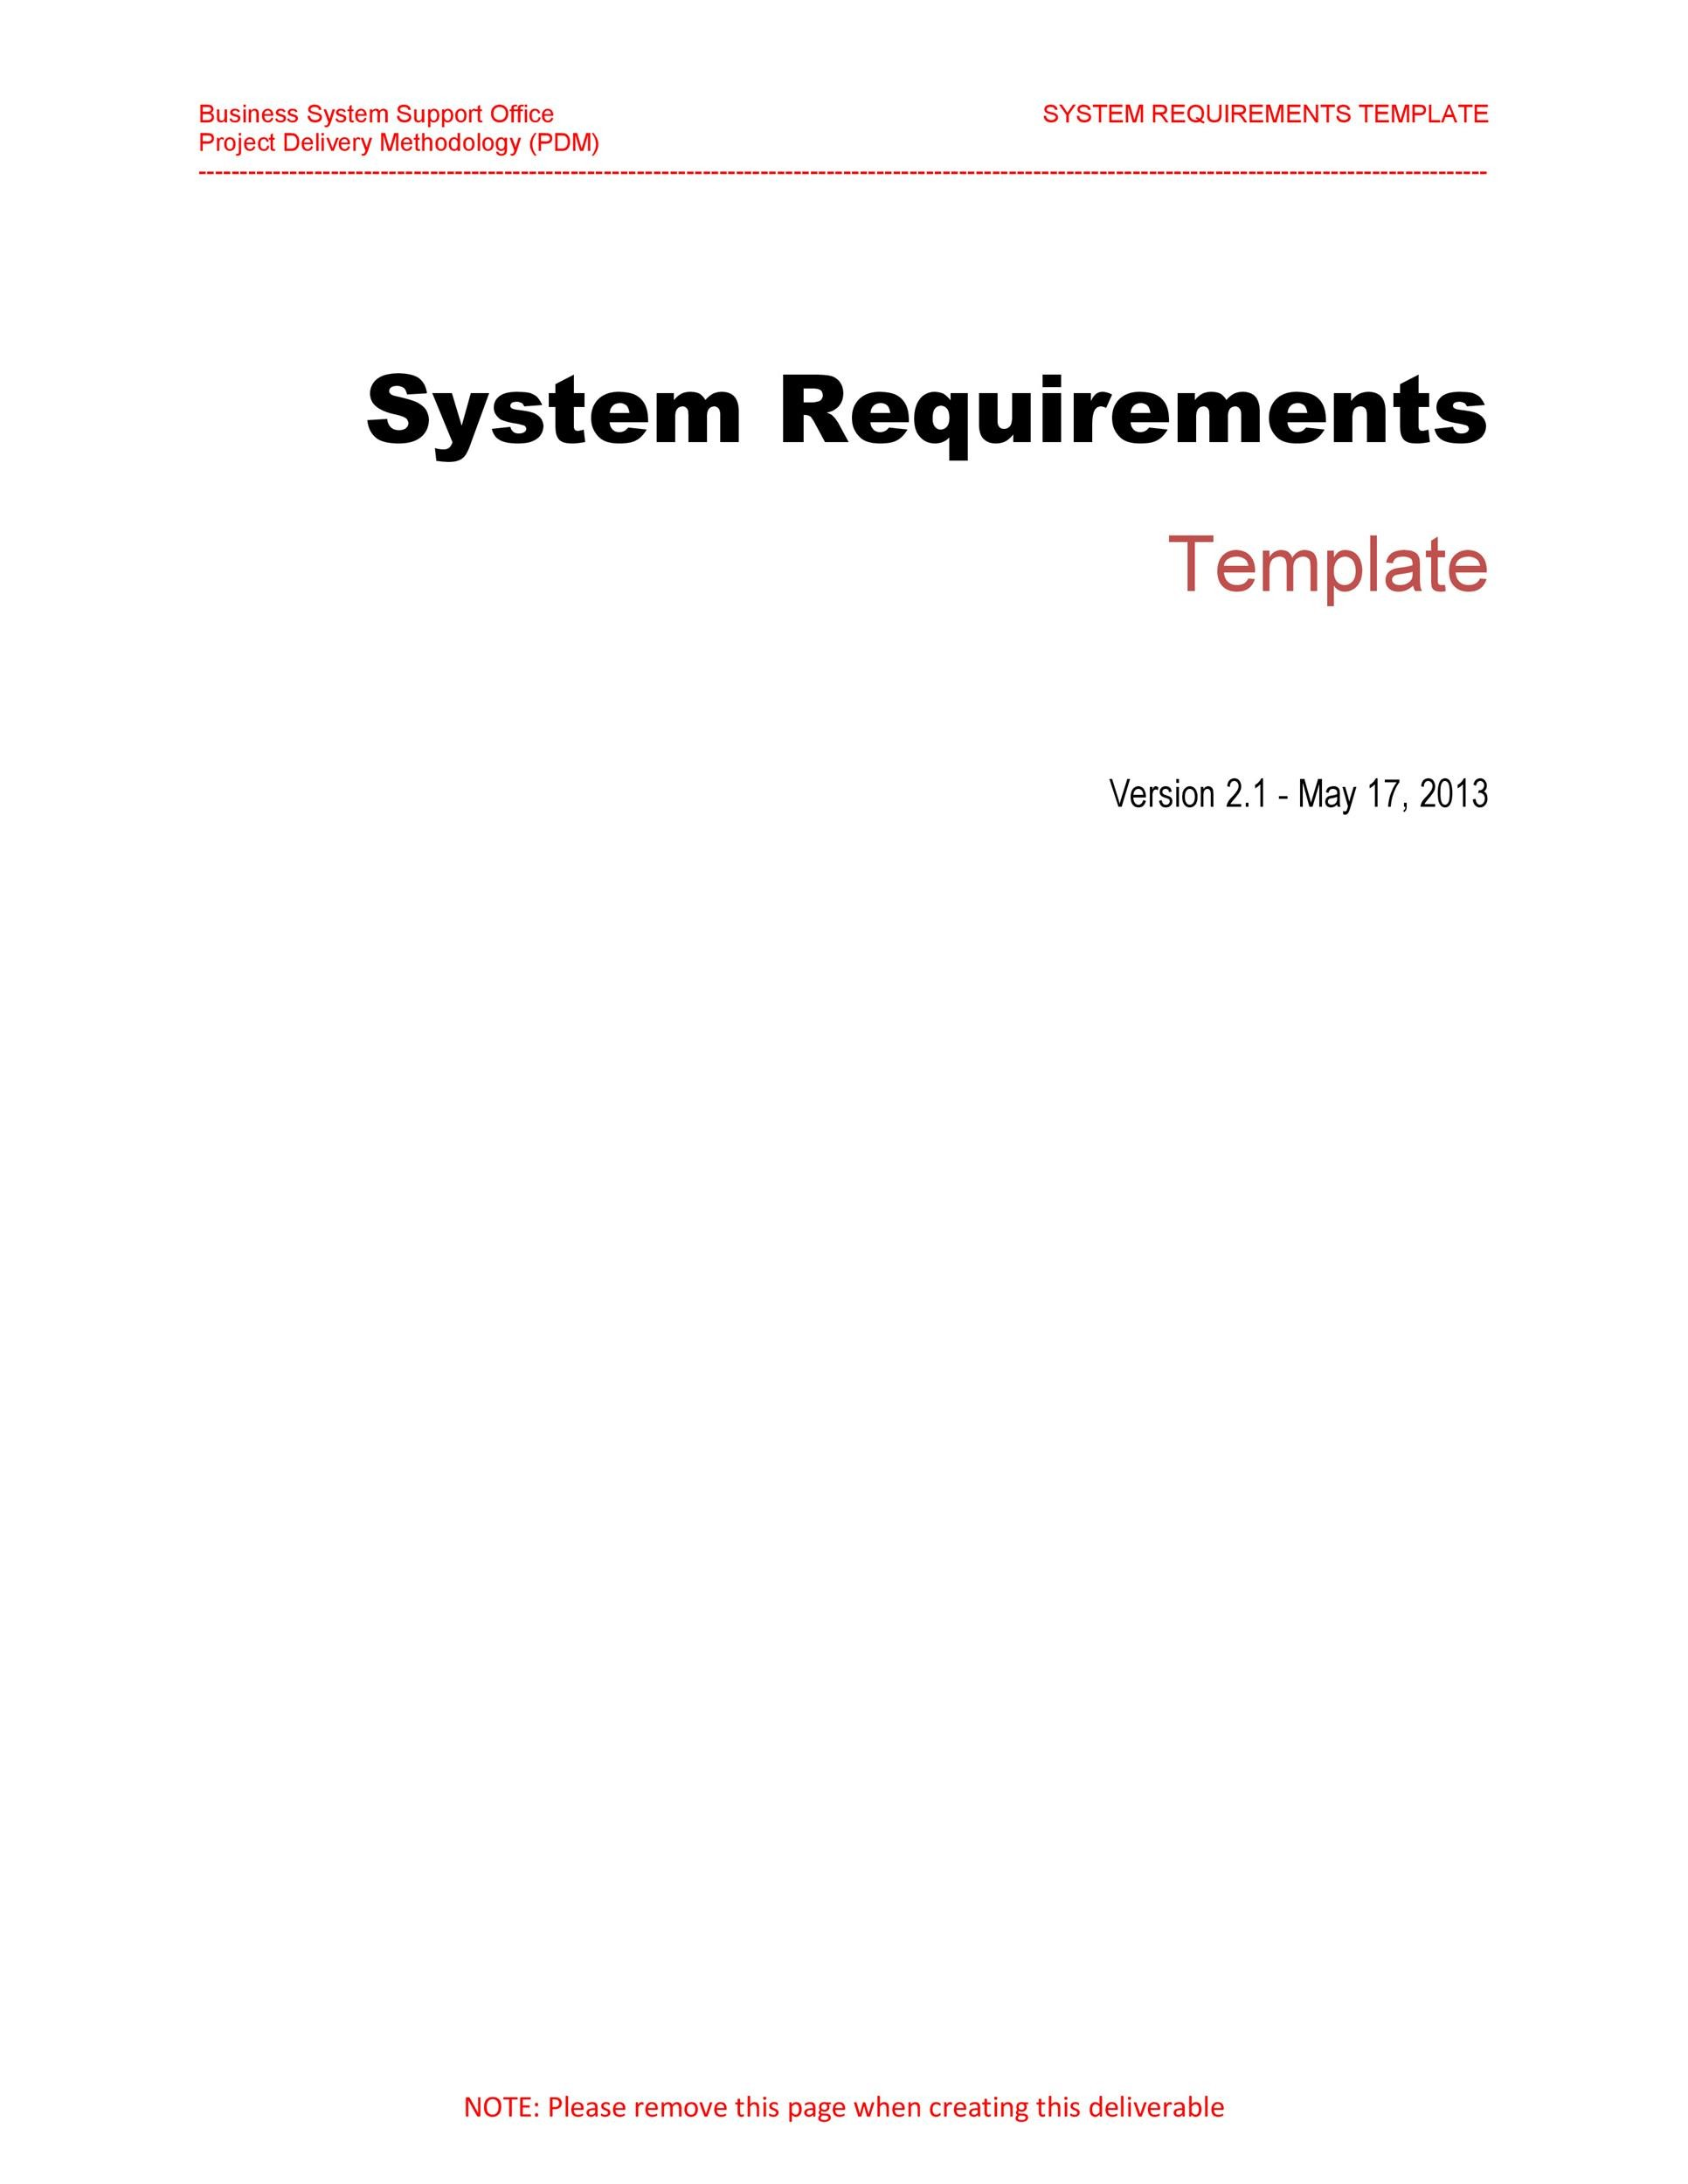 Free business requirements document template 15